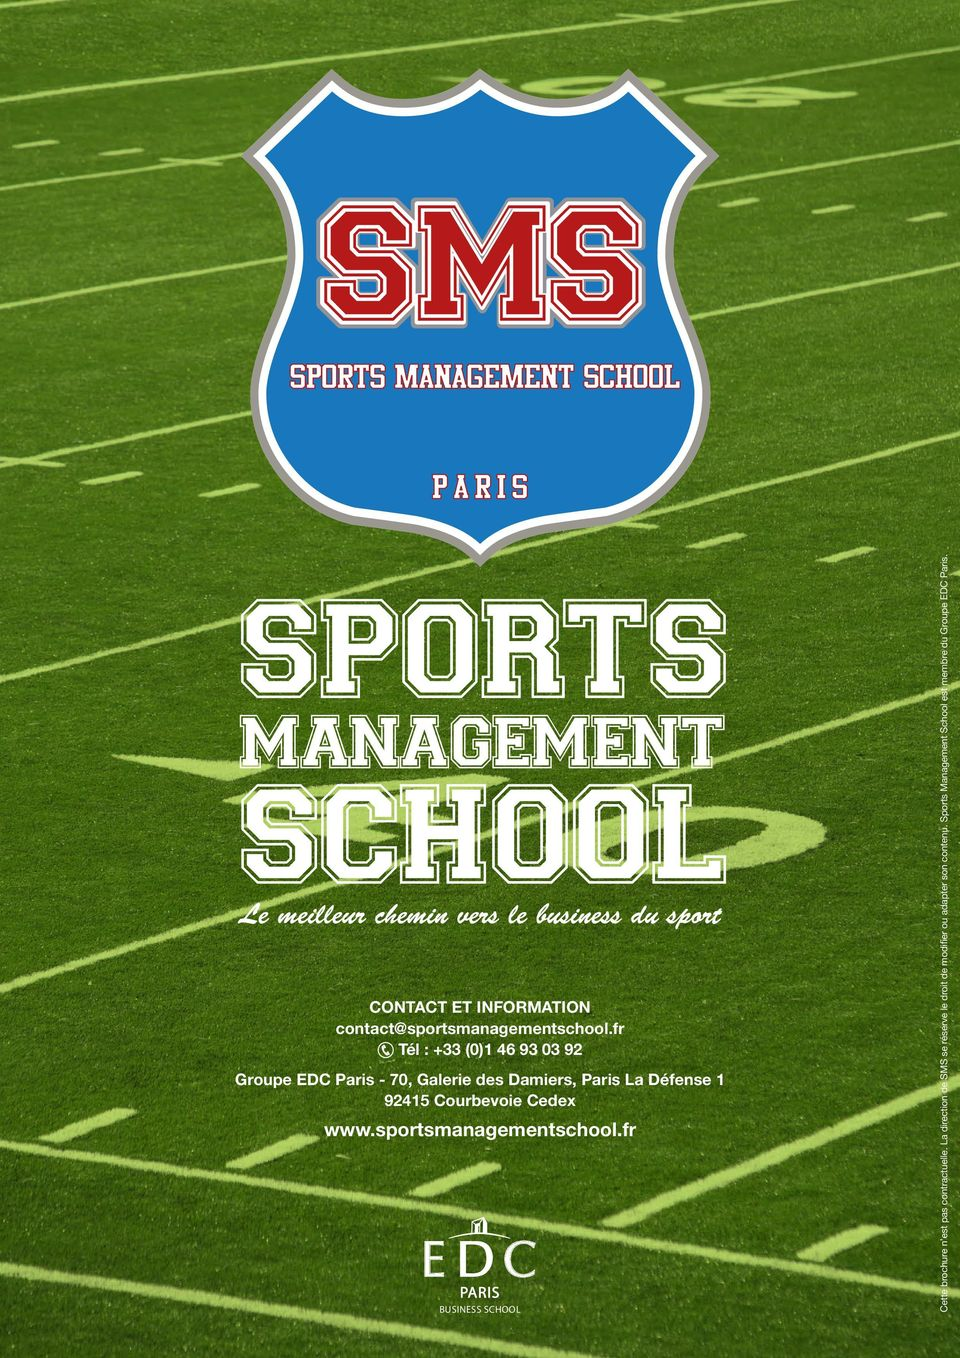 Courbevoie Cedex www.sportsmanagementschool.